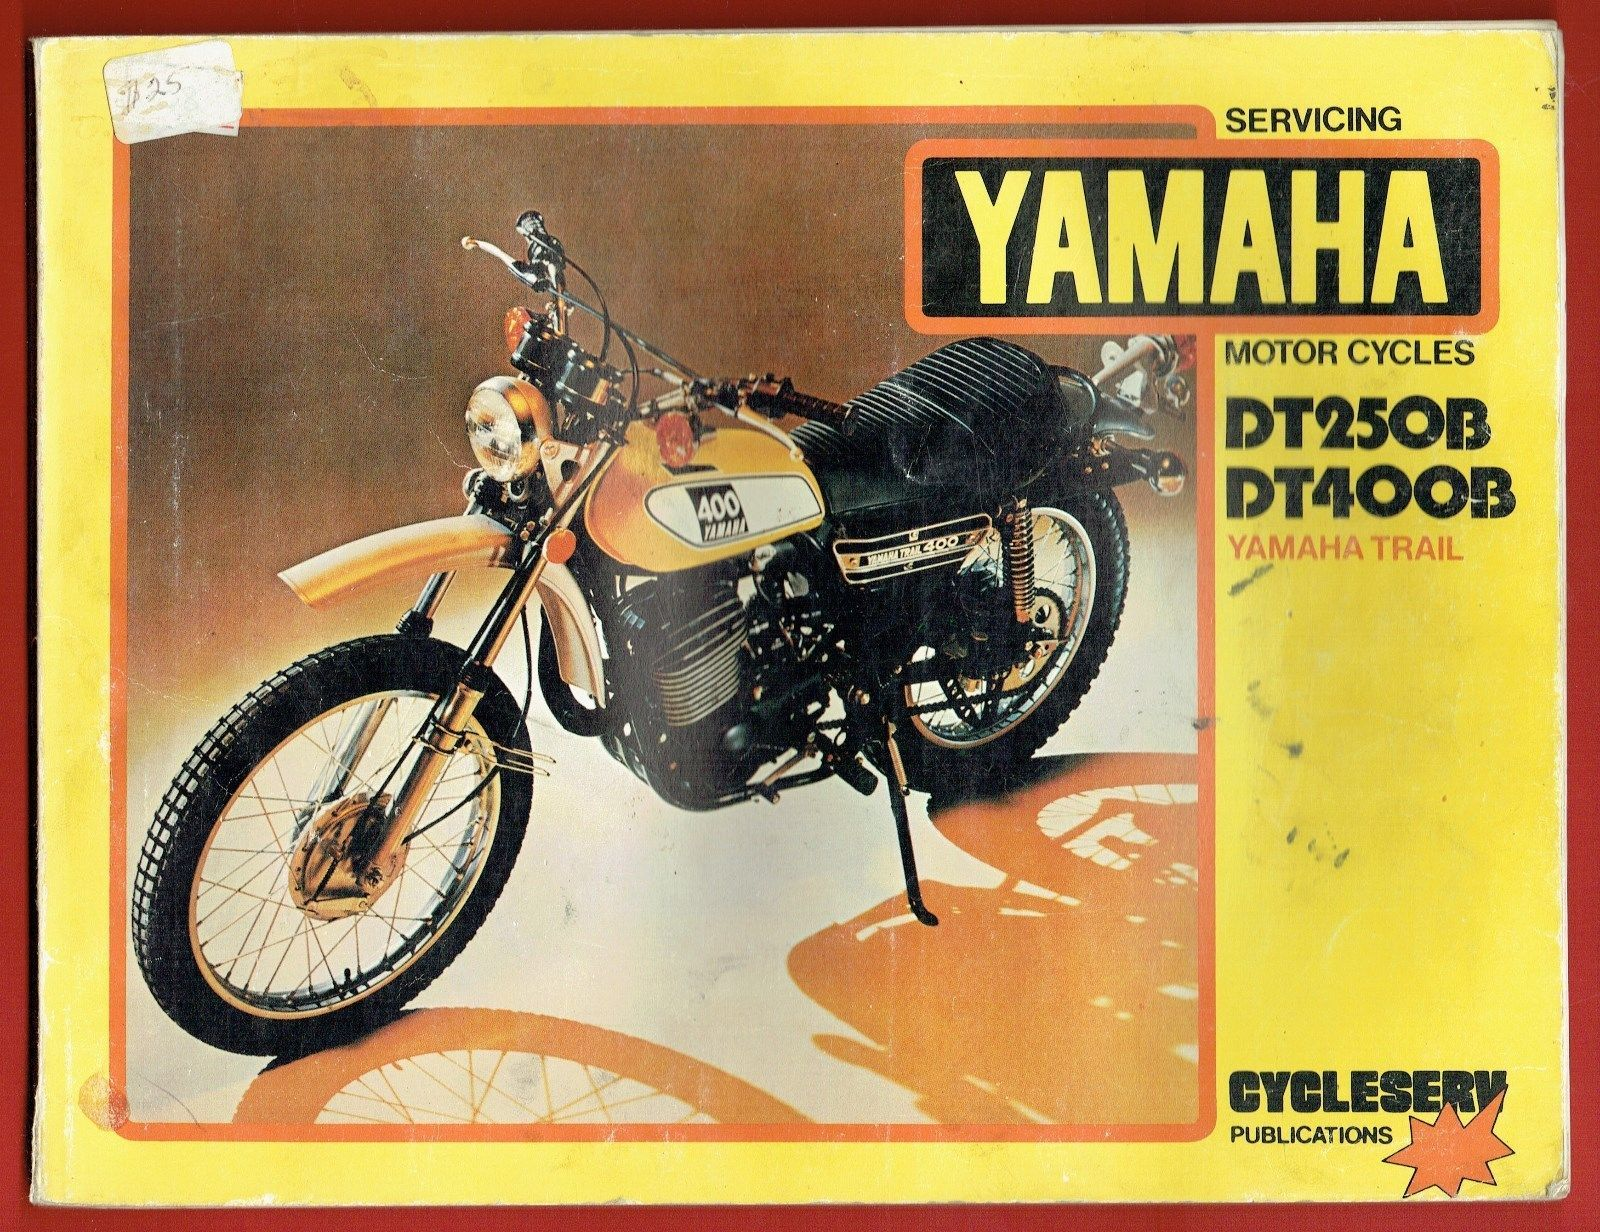 Yamaha DT 250 B DT 400 B Service Manual | eBay Yamaha, Manual, Textbook